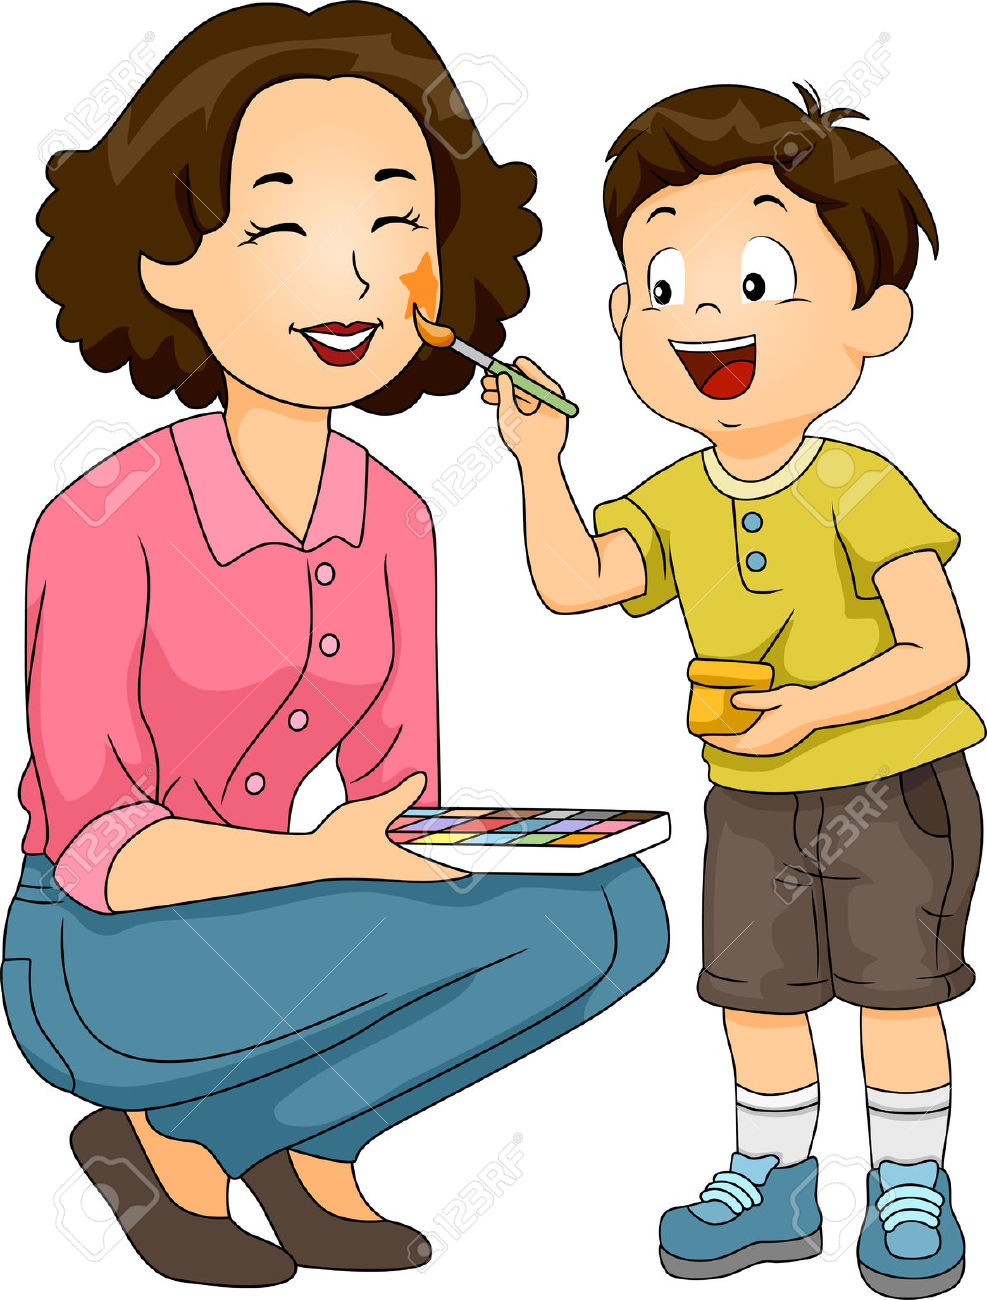 Illustration Of A Boy Painting The Face Of His Mother Stock Photo.